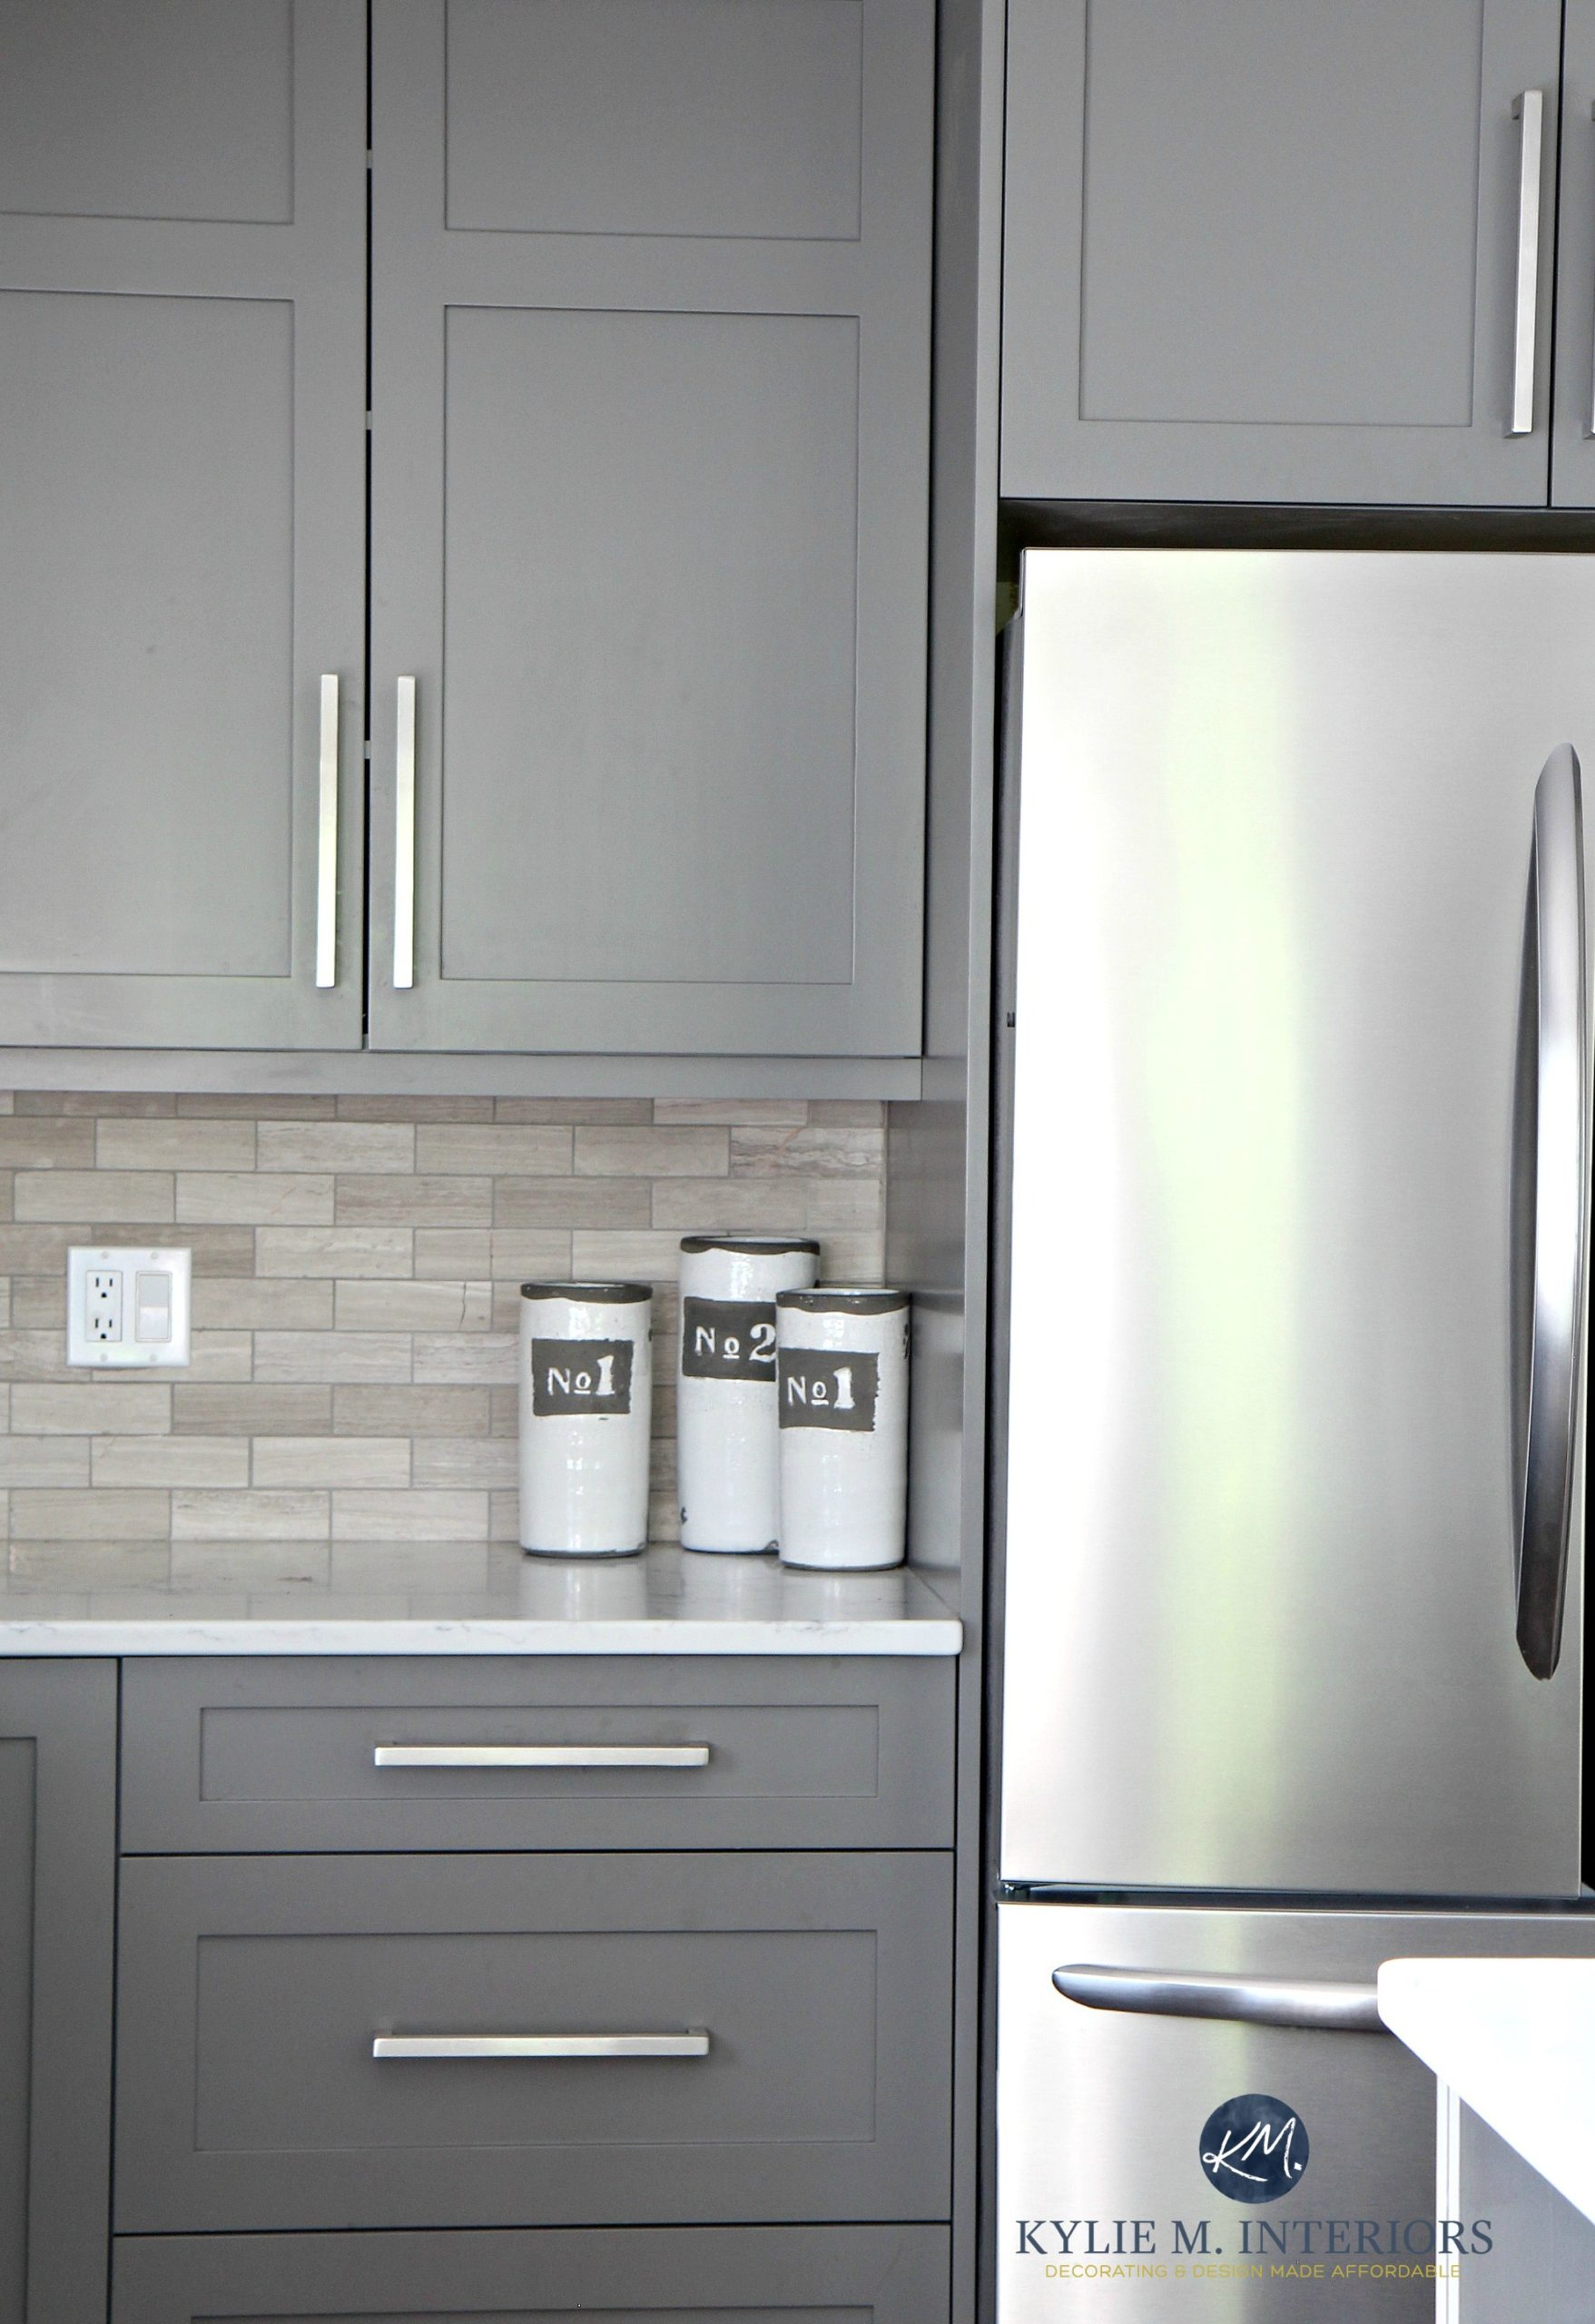 Benjamin Moore Amherst Gray Painted Cabinets, Driftwood Backspash In Subway  Tile Layout. Kylie M Interiors E Design